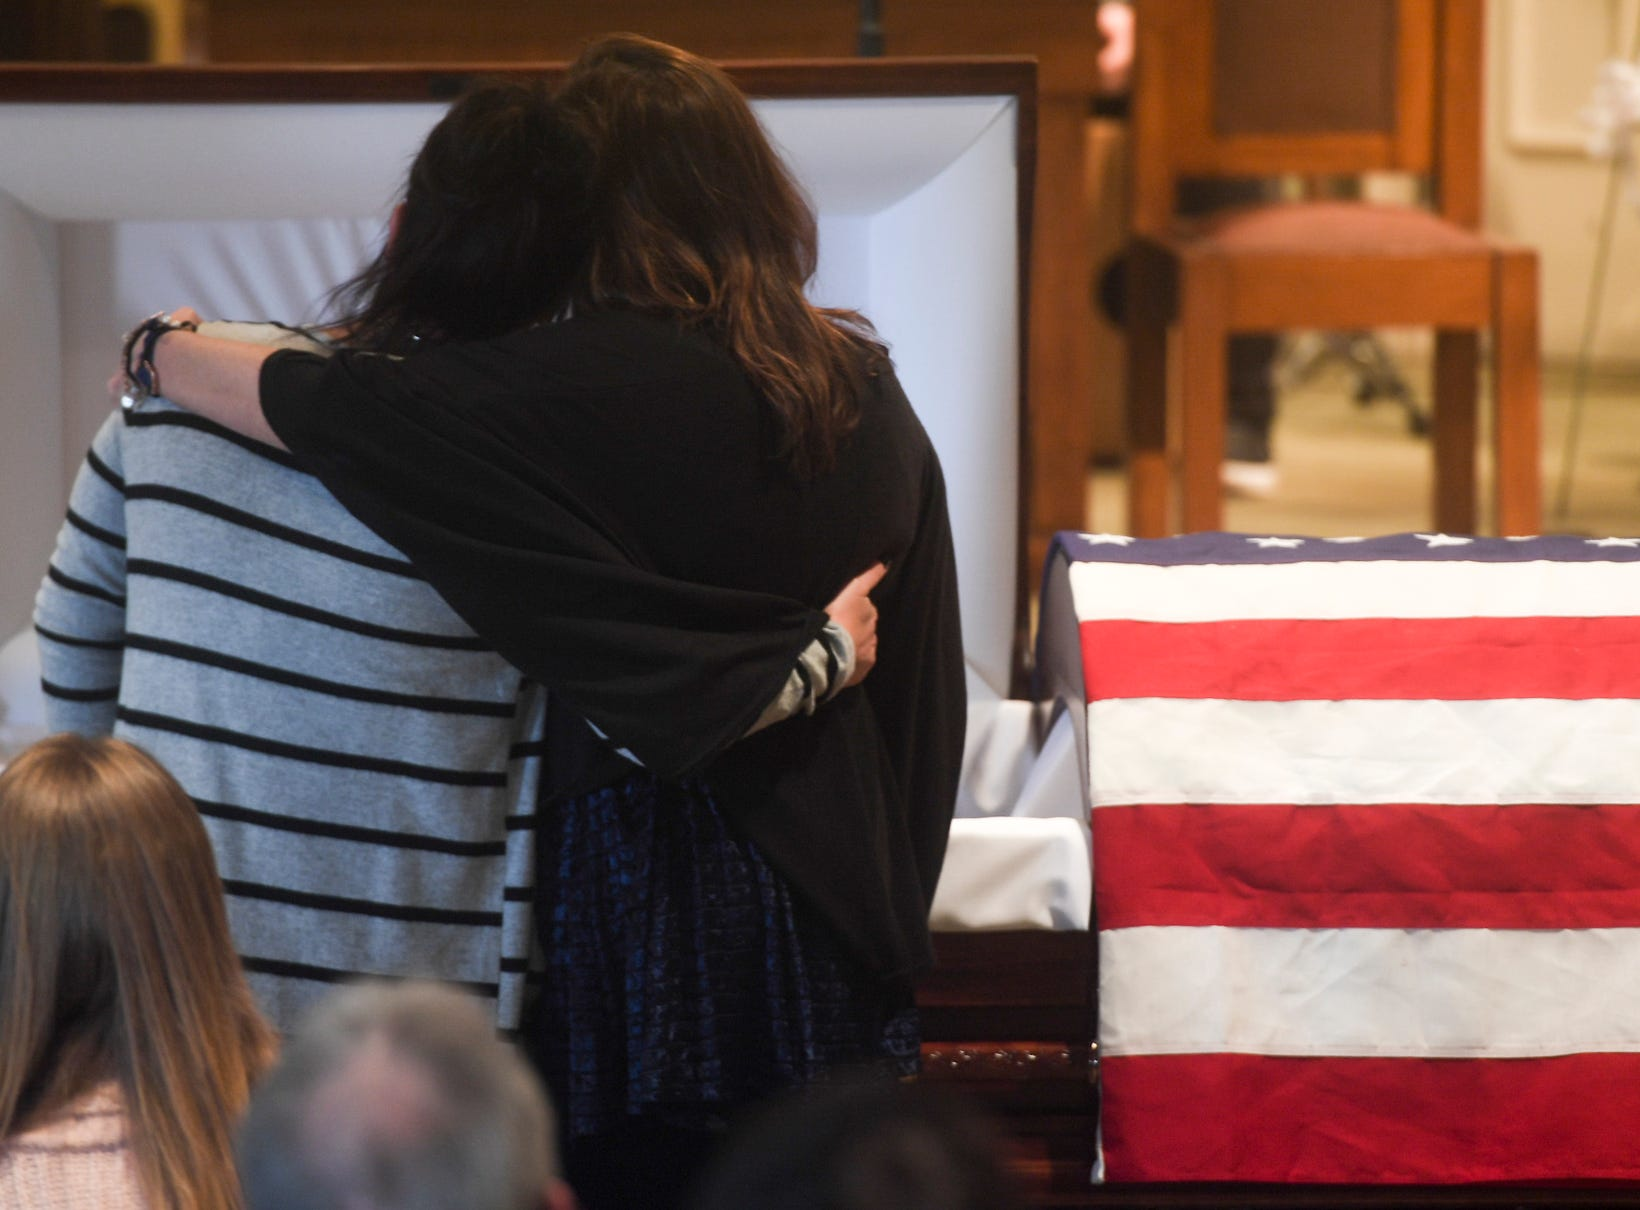 Elizabeth and Phyllis Park console each other as they stand in front of their father's casket during the Celebration of Life service for Assistant Alamo Police Chief Phillip Harold Park, Friday, Jan. 11, 2019.